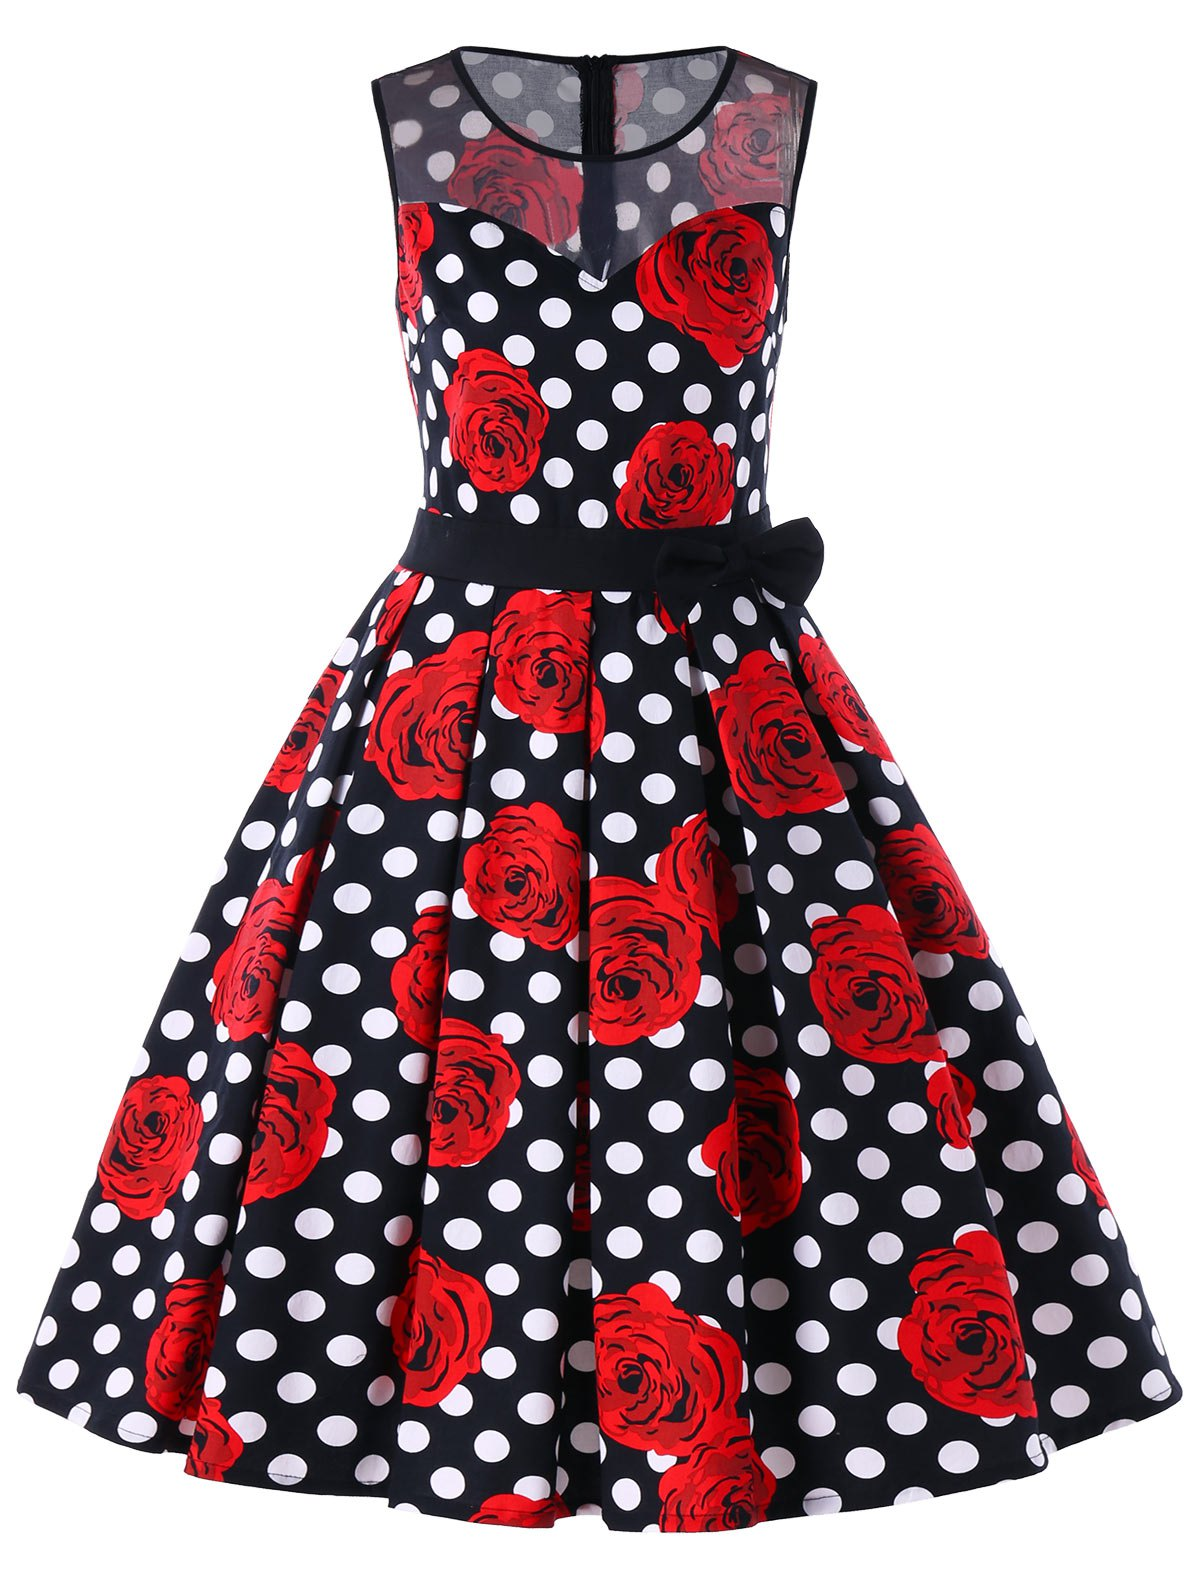 Affordable Floral Polka Dot Sleeveless Vintage Dress